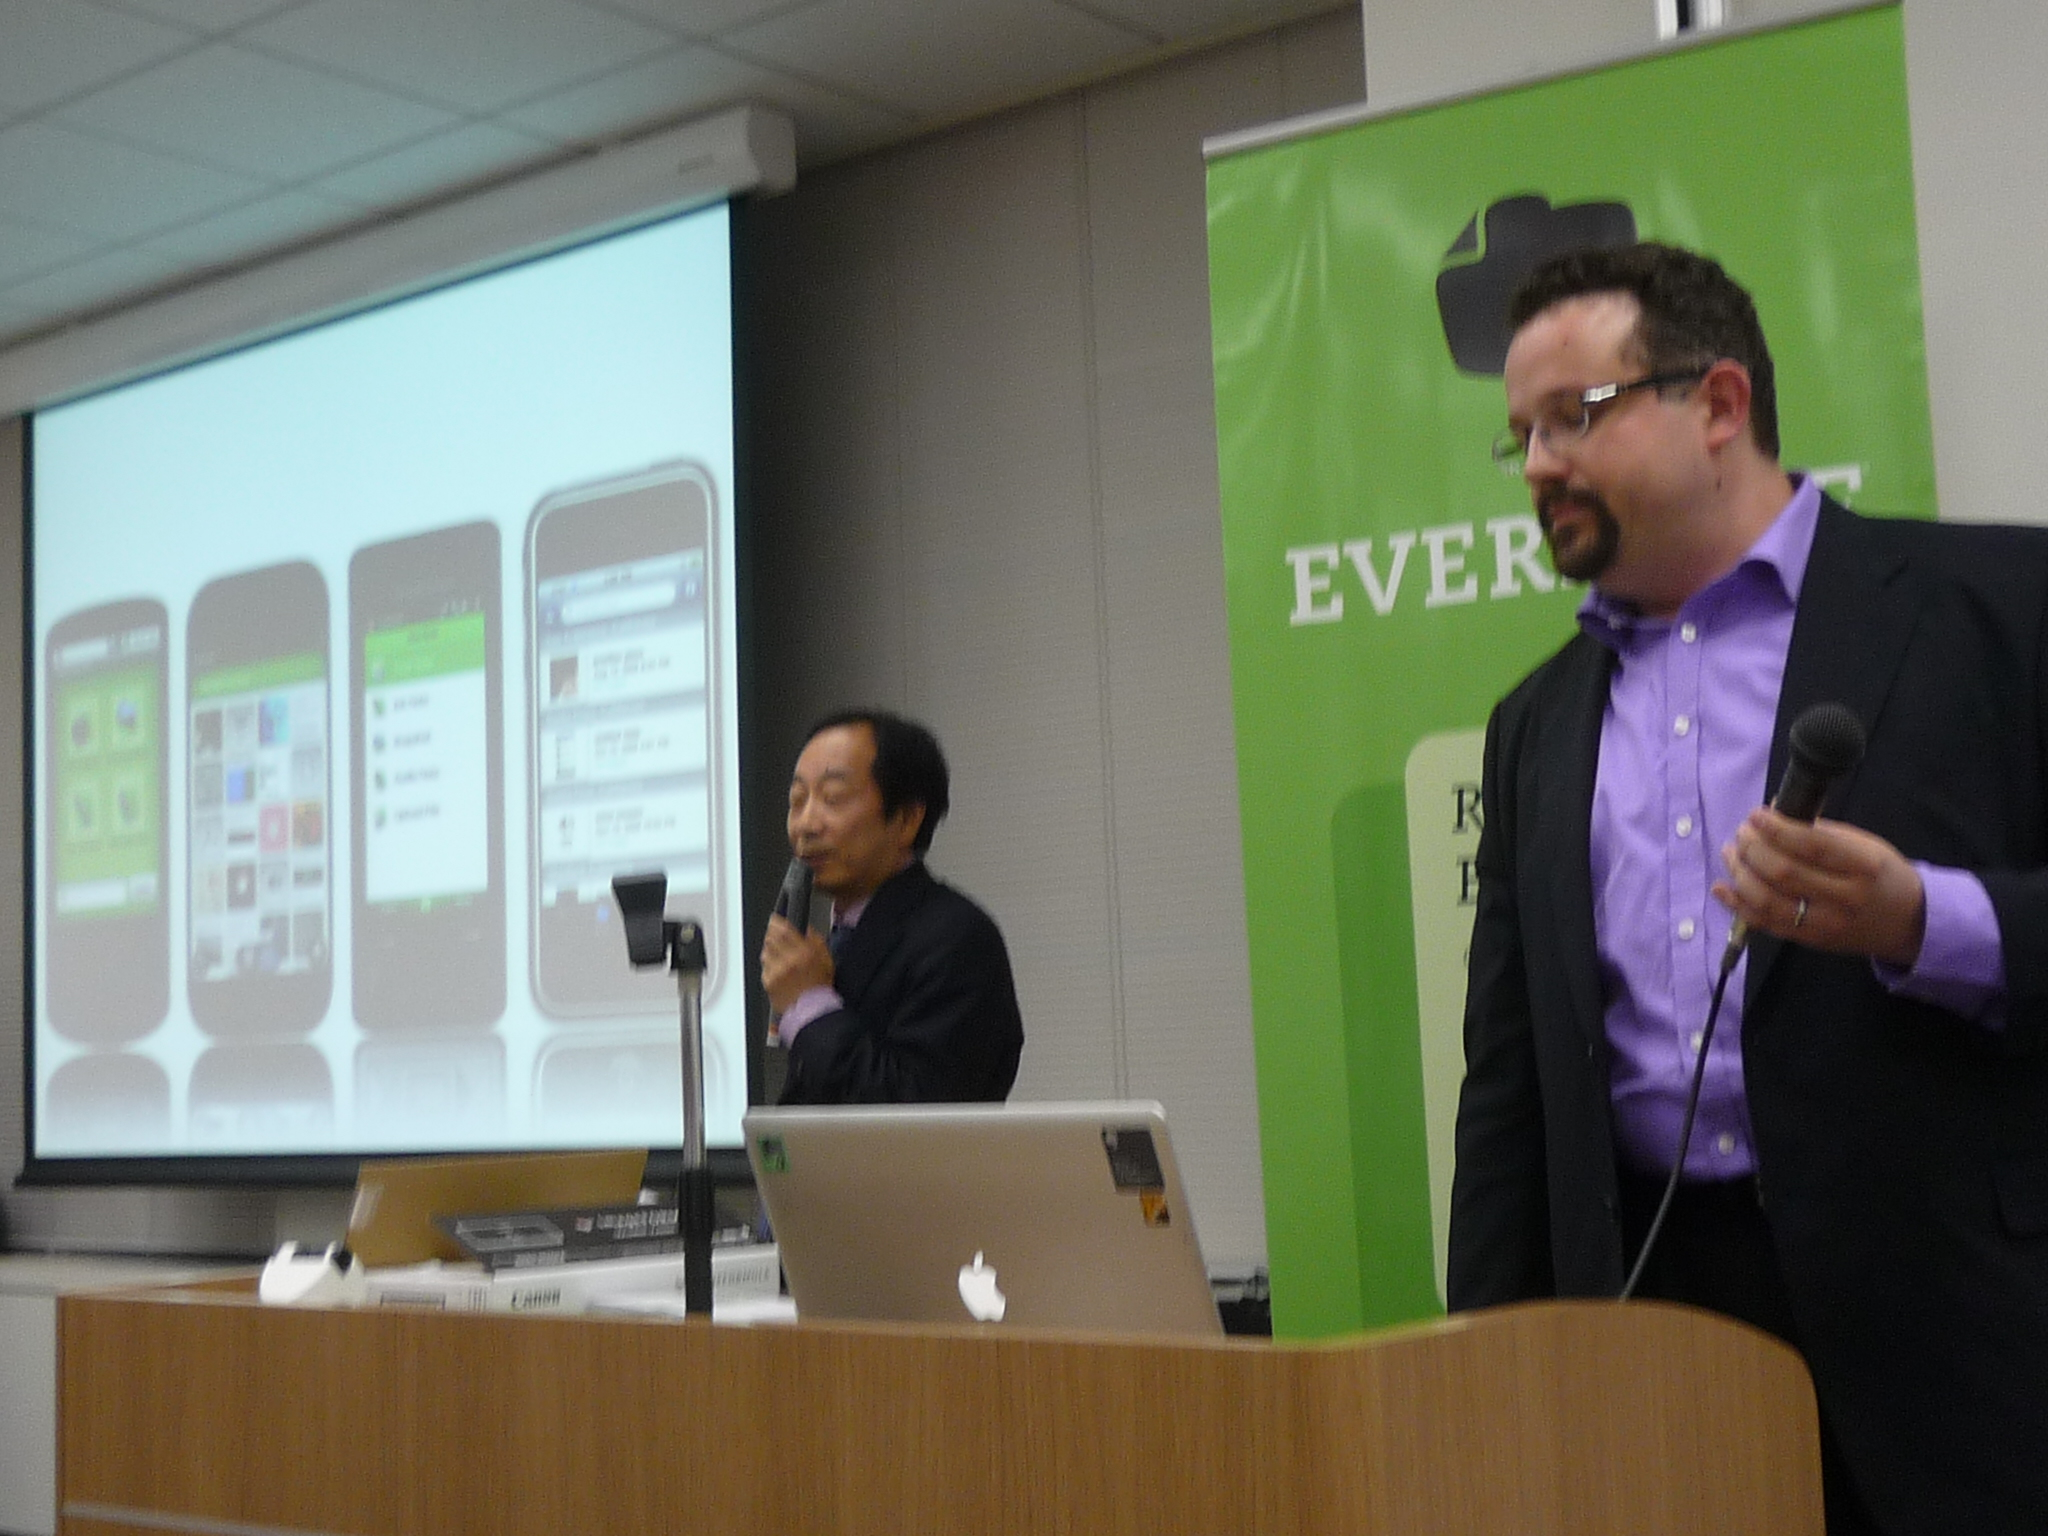 Evernote MeetUpに参加してきました★